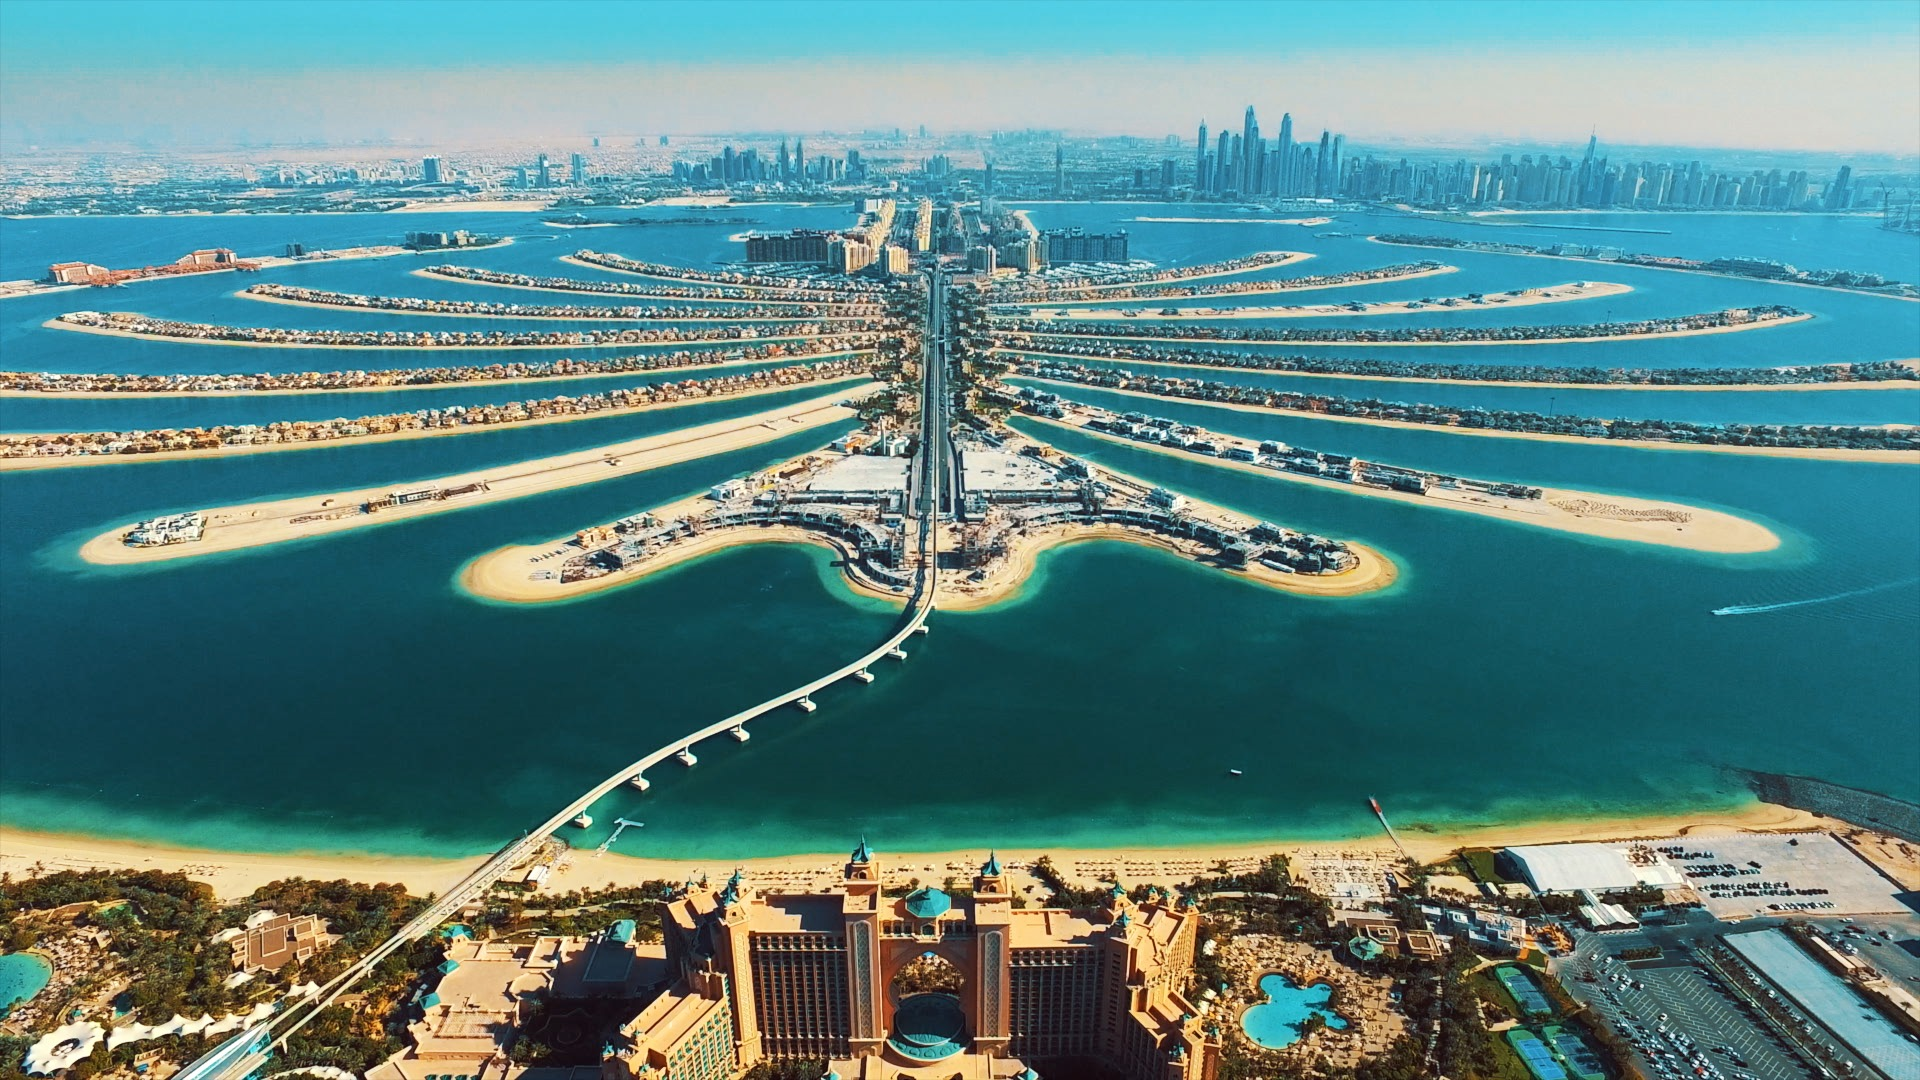 The Palm Jumeirah. Dubai